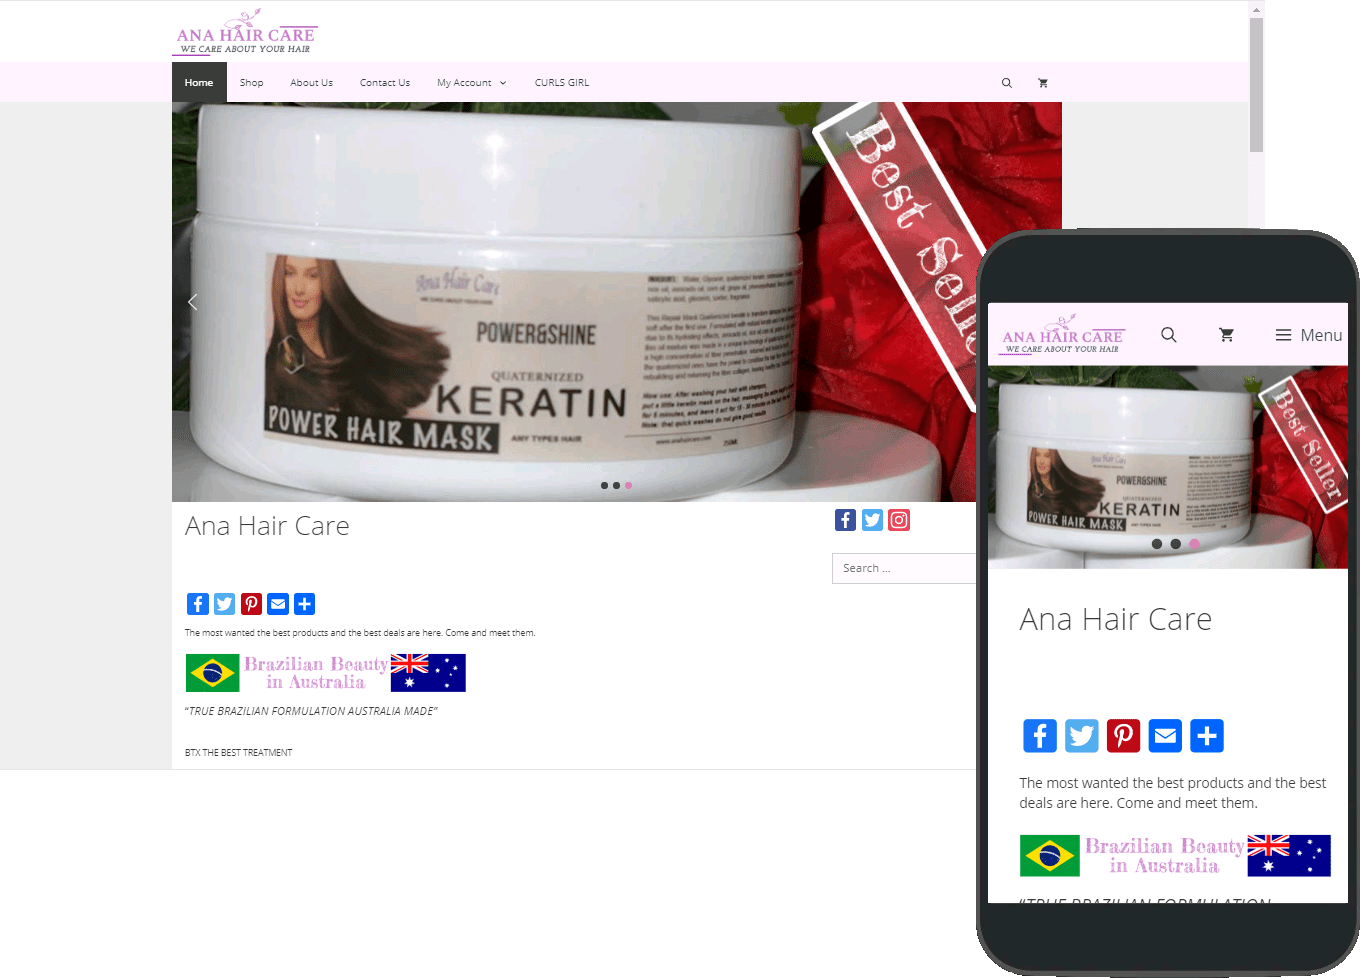 Ana Hair Care website portfolio images of desktop and mobile view